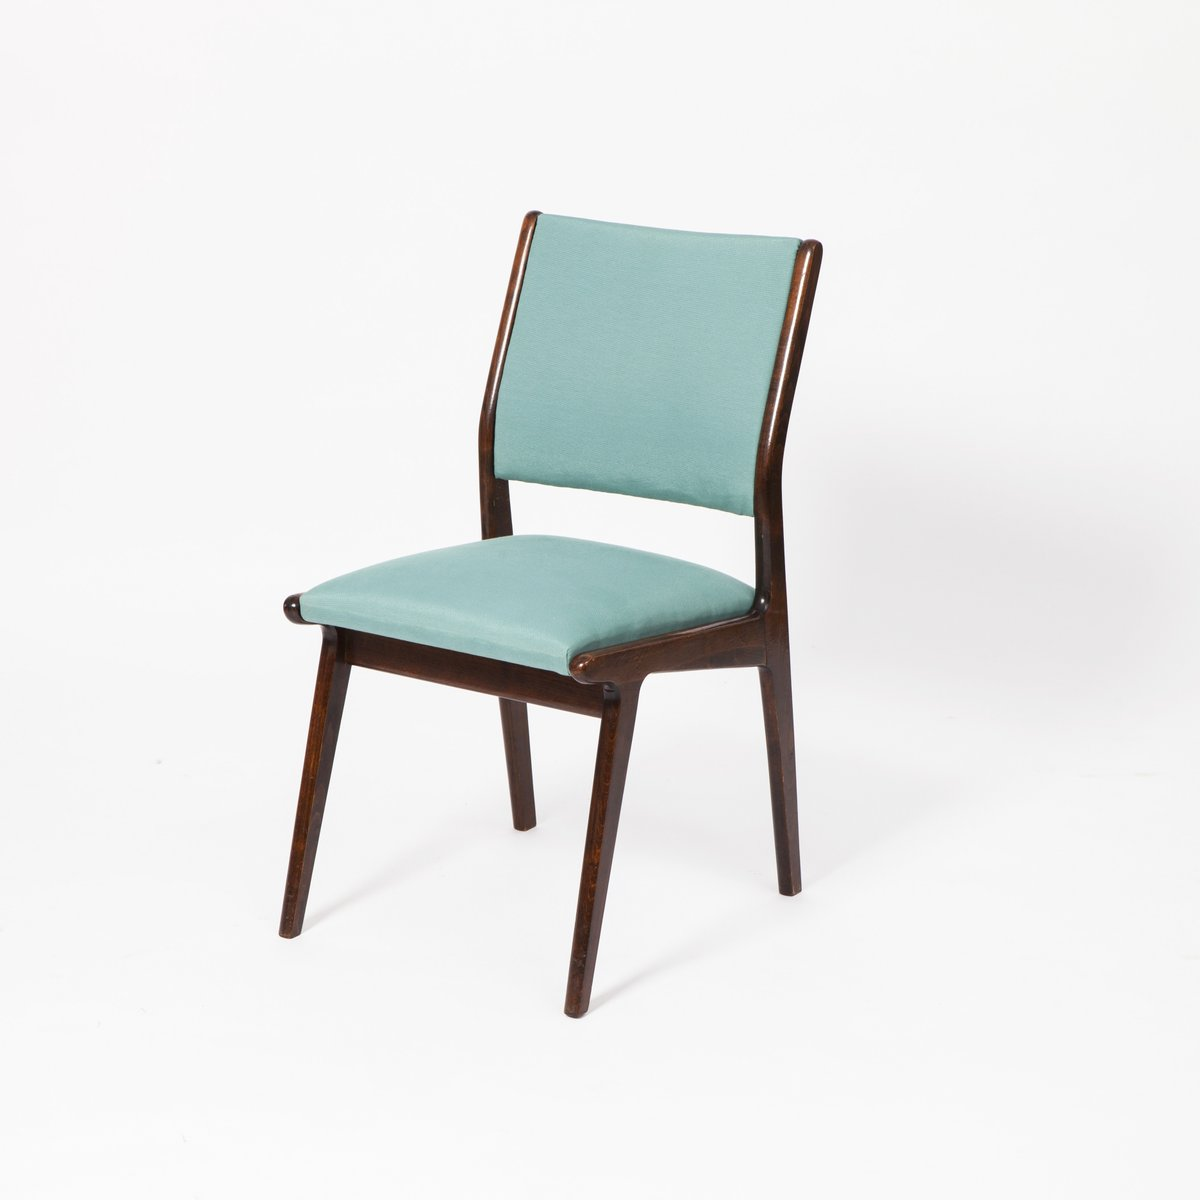 Rosewood dining chairs with light turquoise upholstery set of 2 for sale at pamono - Turquoise upholstered dining chair ...